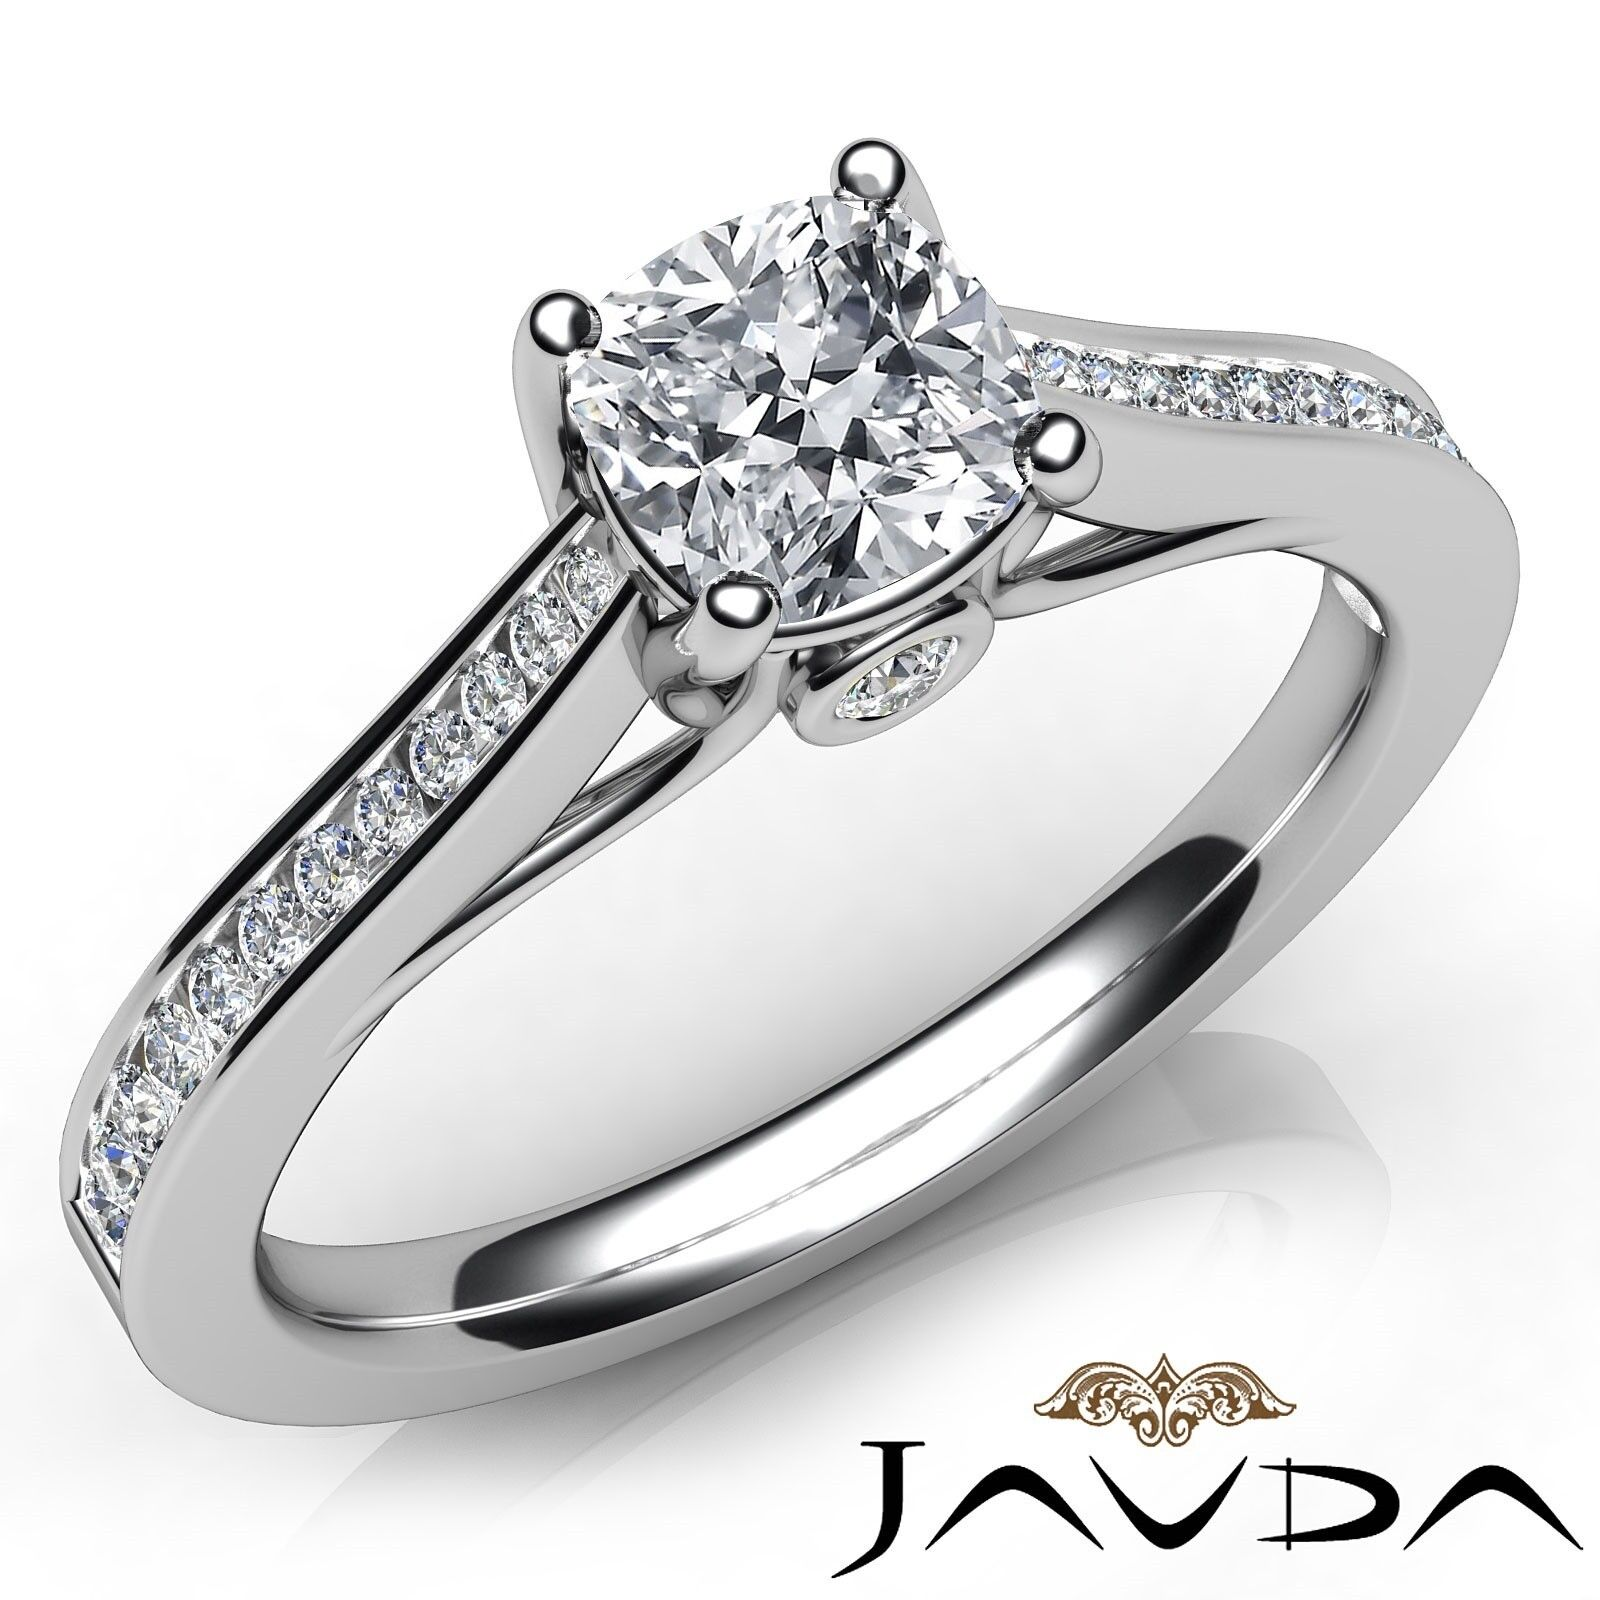 1.05ct Channel Bezel Prong Cushion Diamond Engagement Ring GIA F-VVS1 White Gold